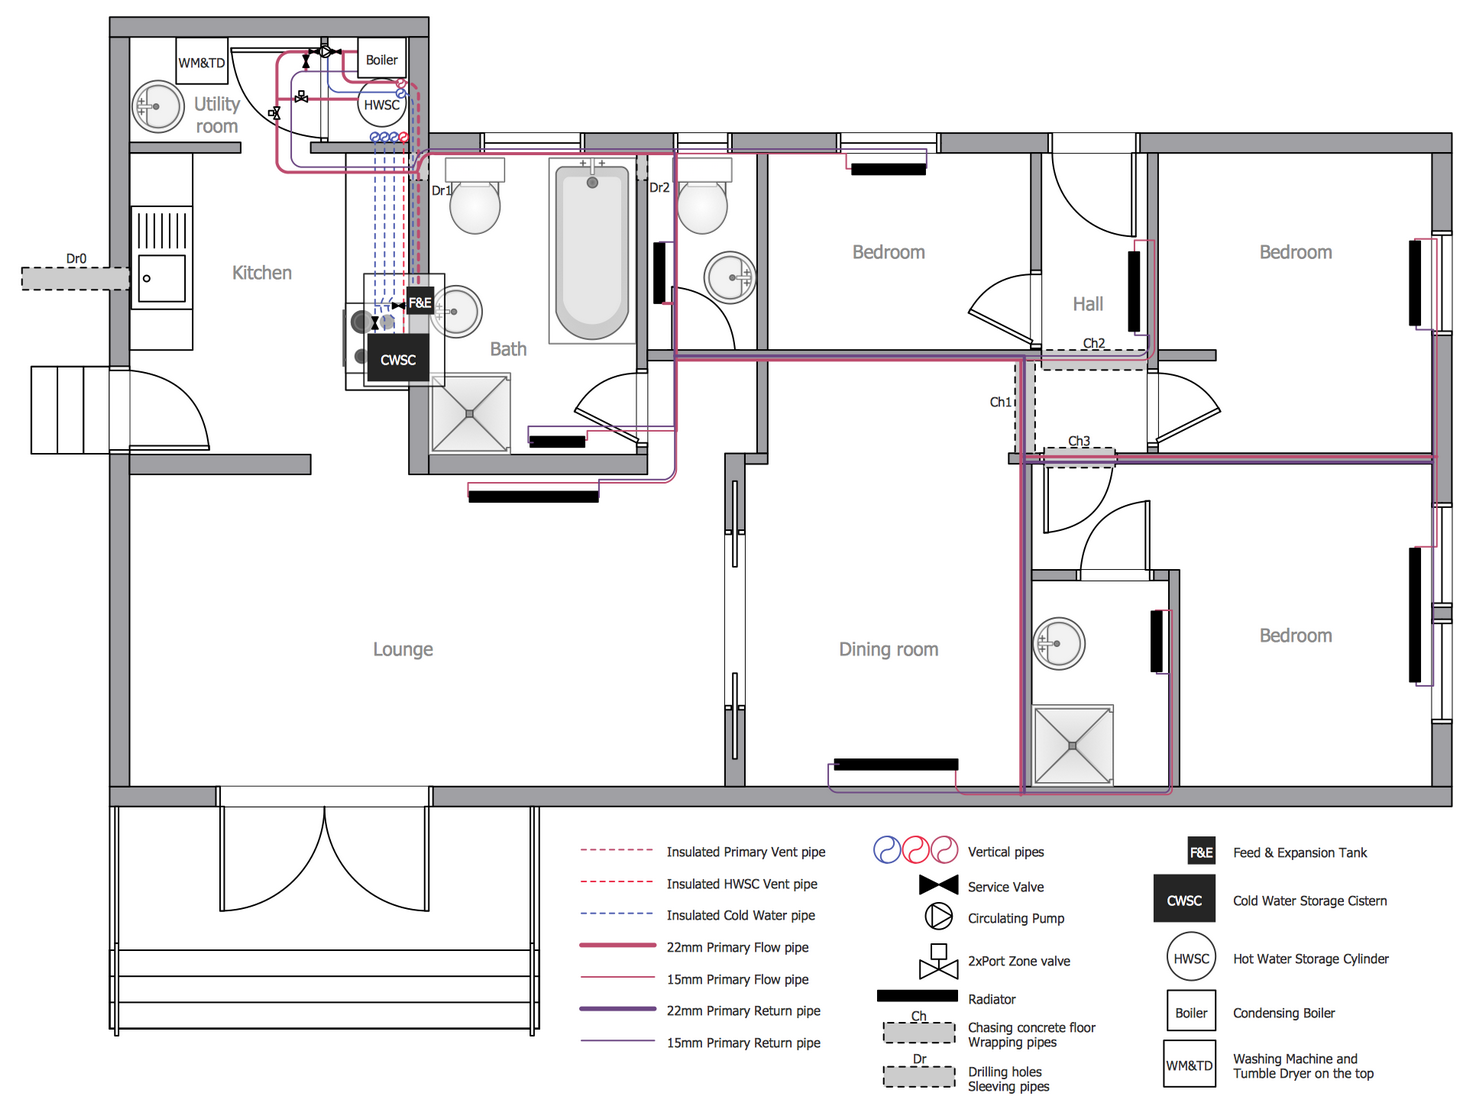 Plumbing and piping plans solution for Building site plan software